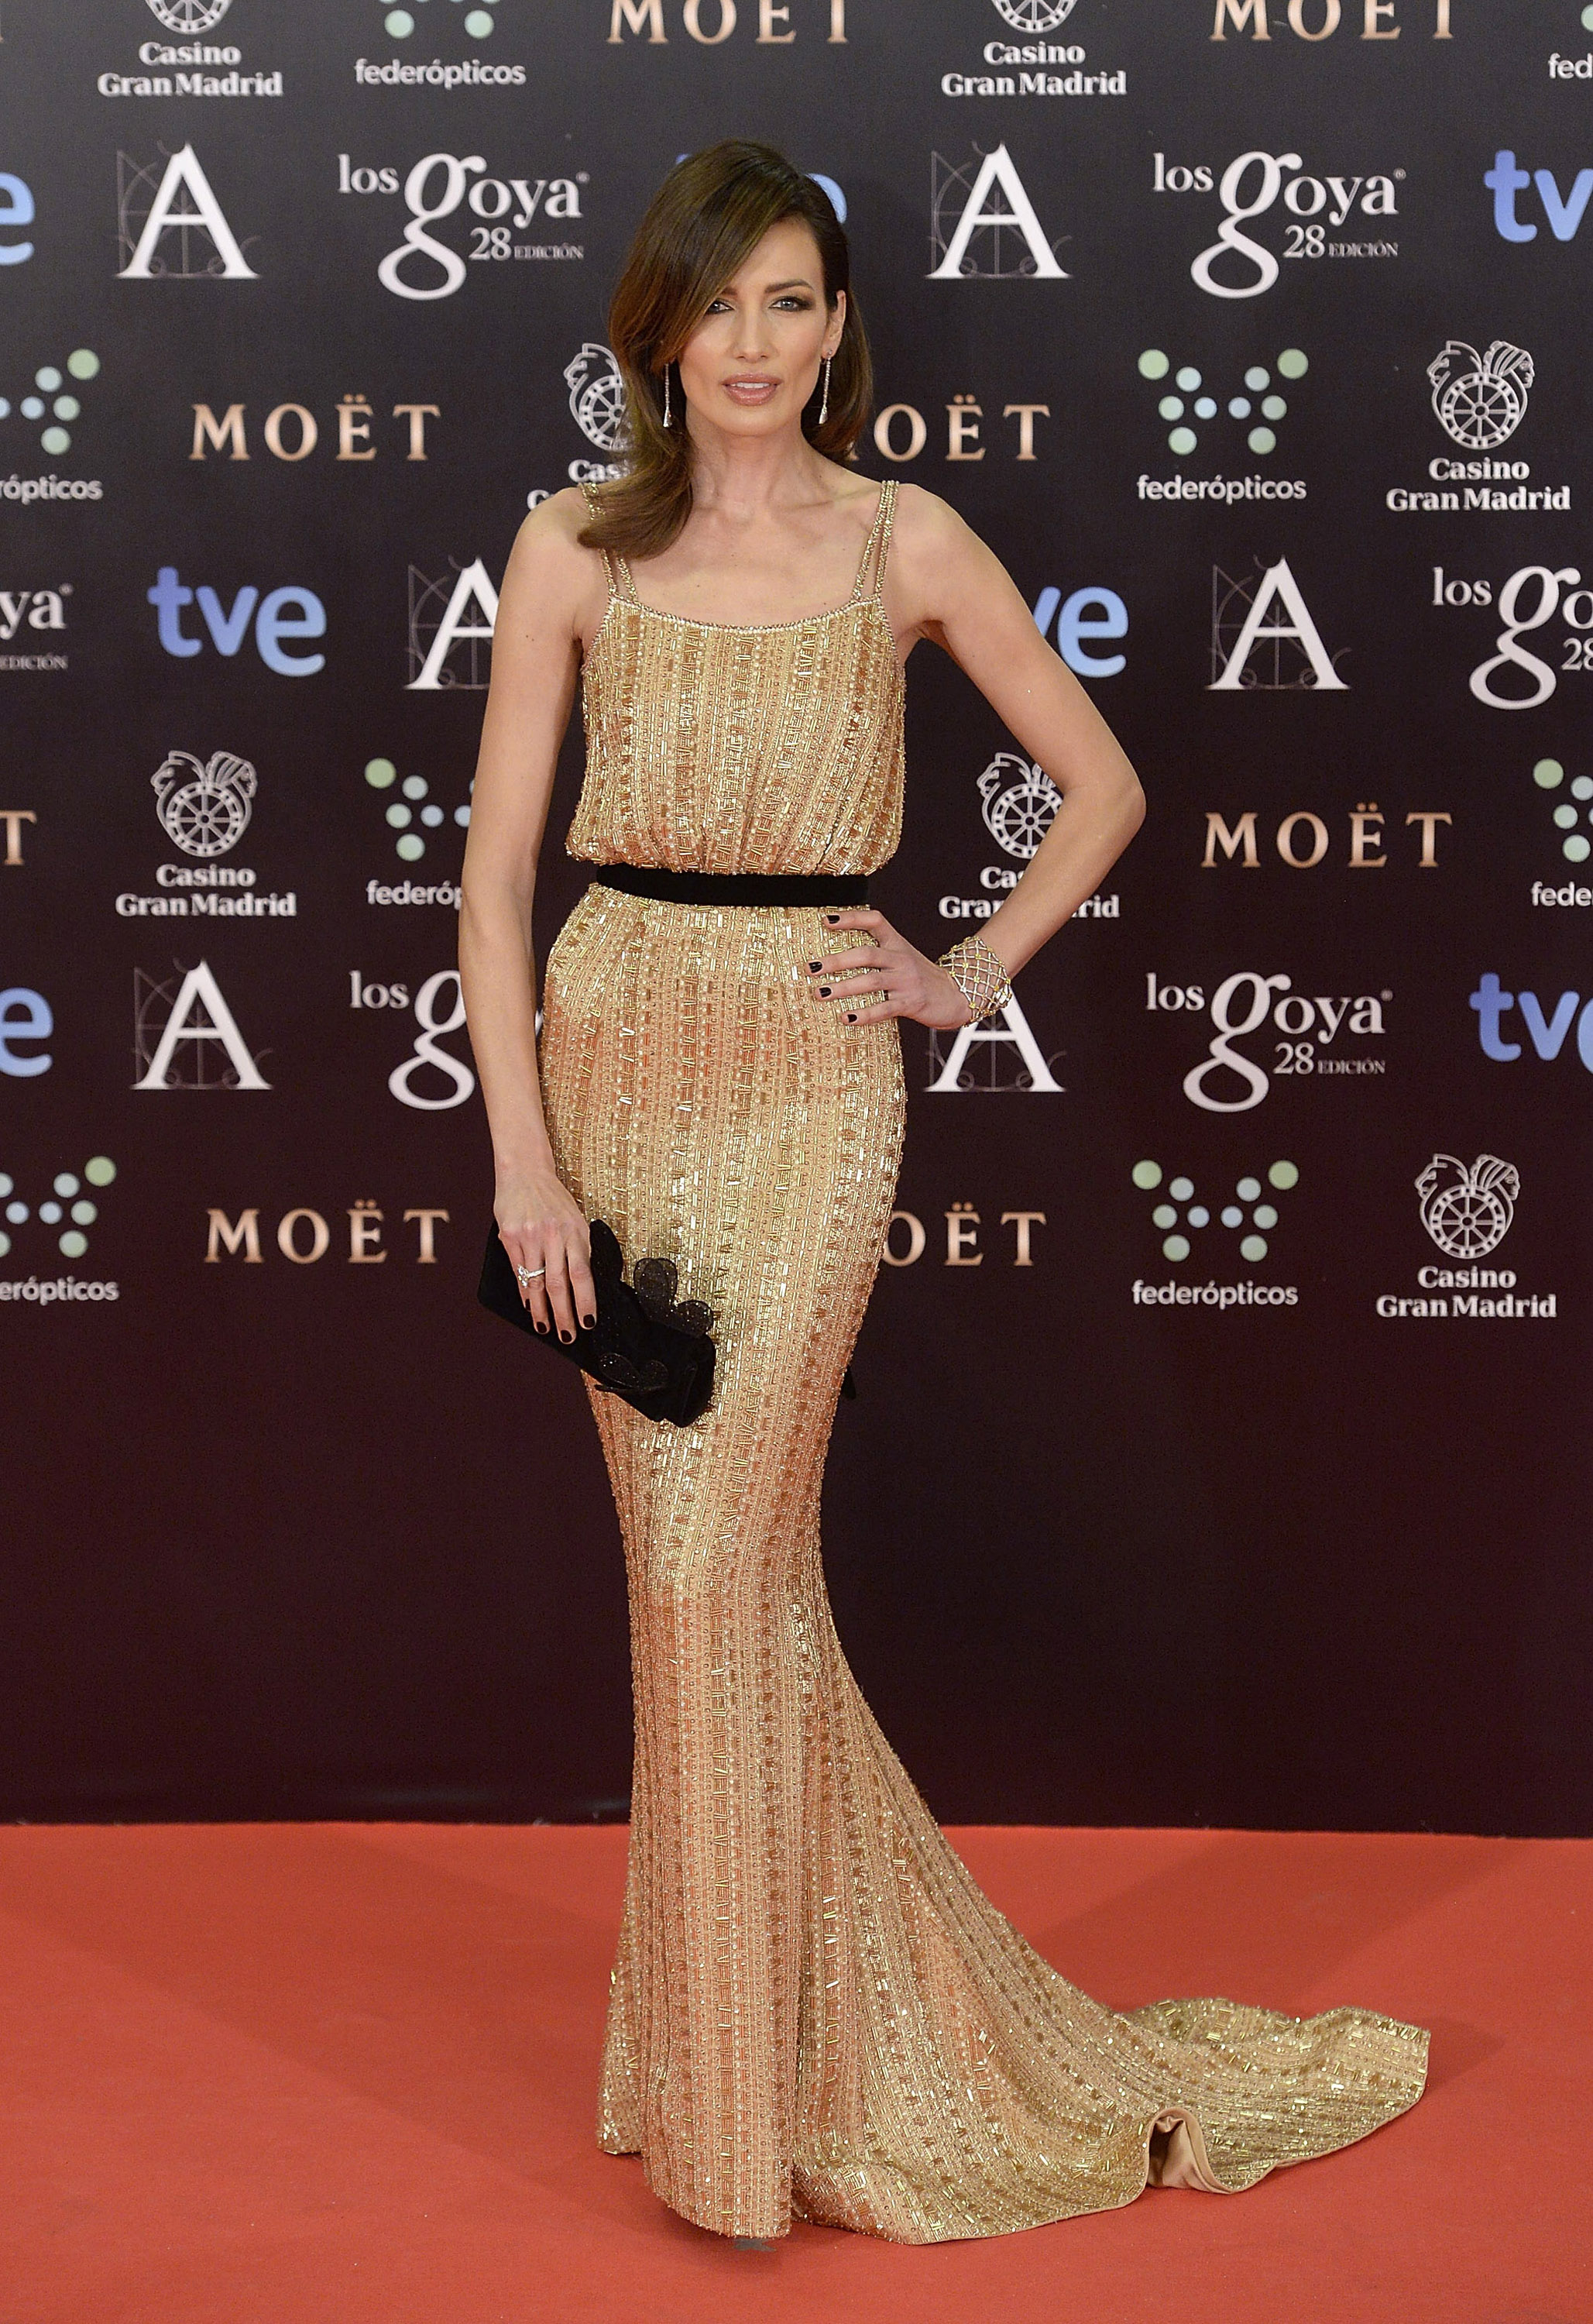 Goya Cinema Awards 2014 - Red Carpet